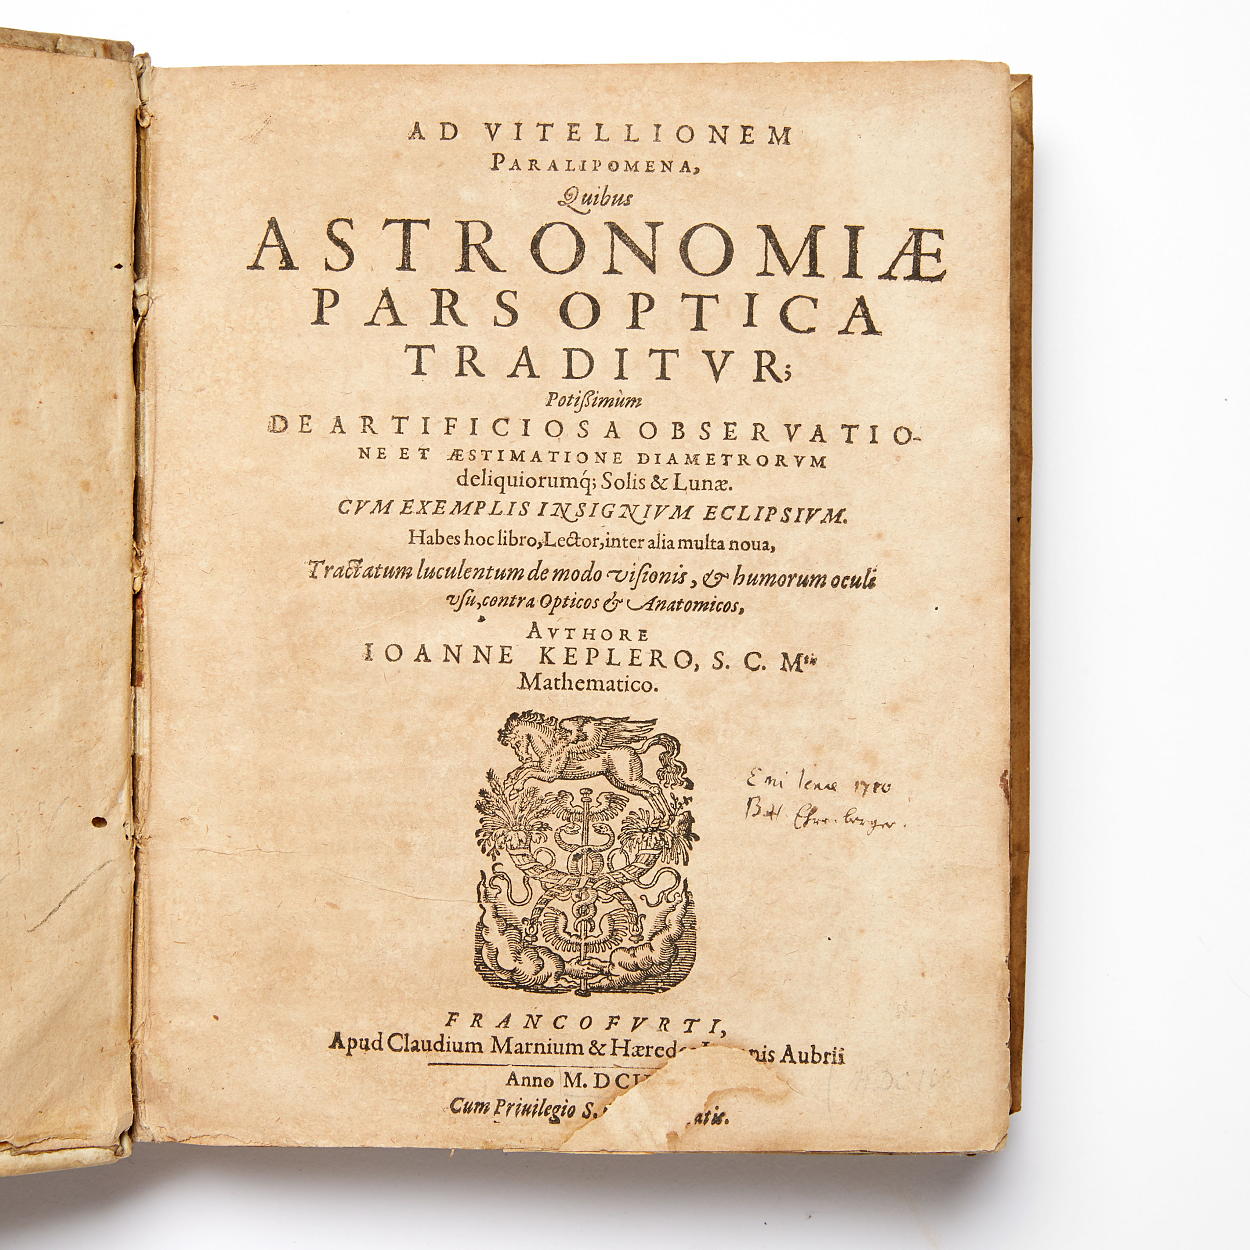 First ed. Kepler's Astronomiae pars optica... 1604